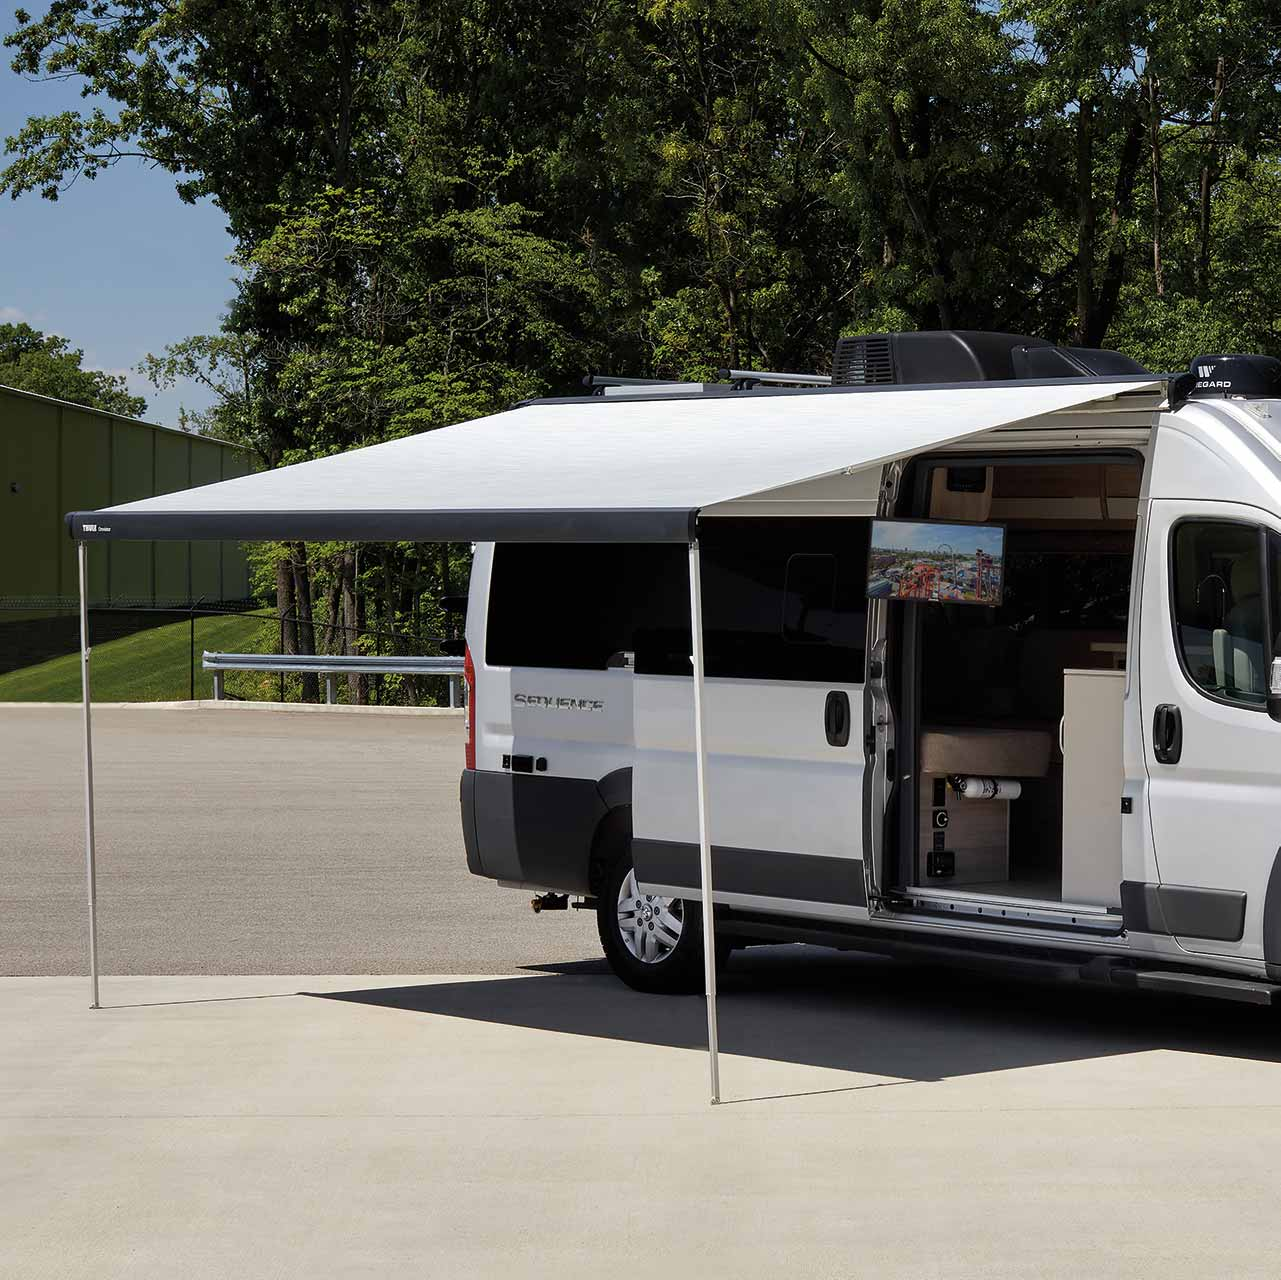 2020 THOR MOTOR COACH SEQUENCE 20L full